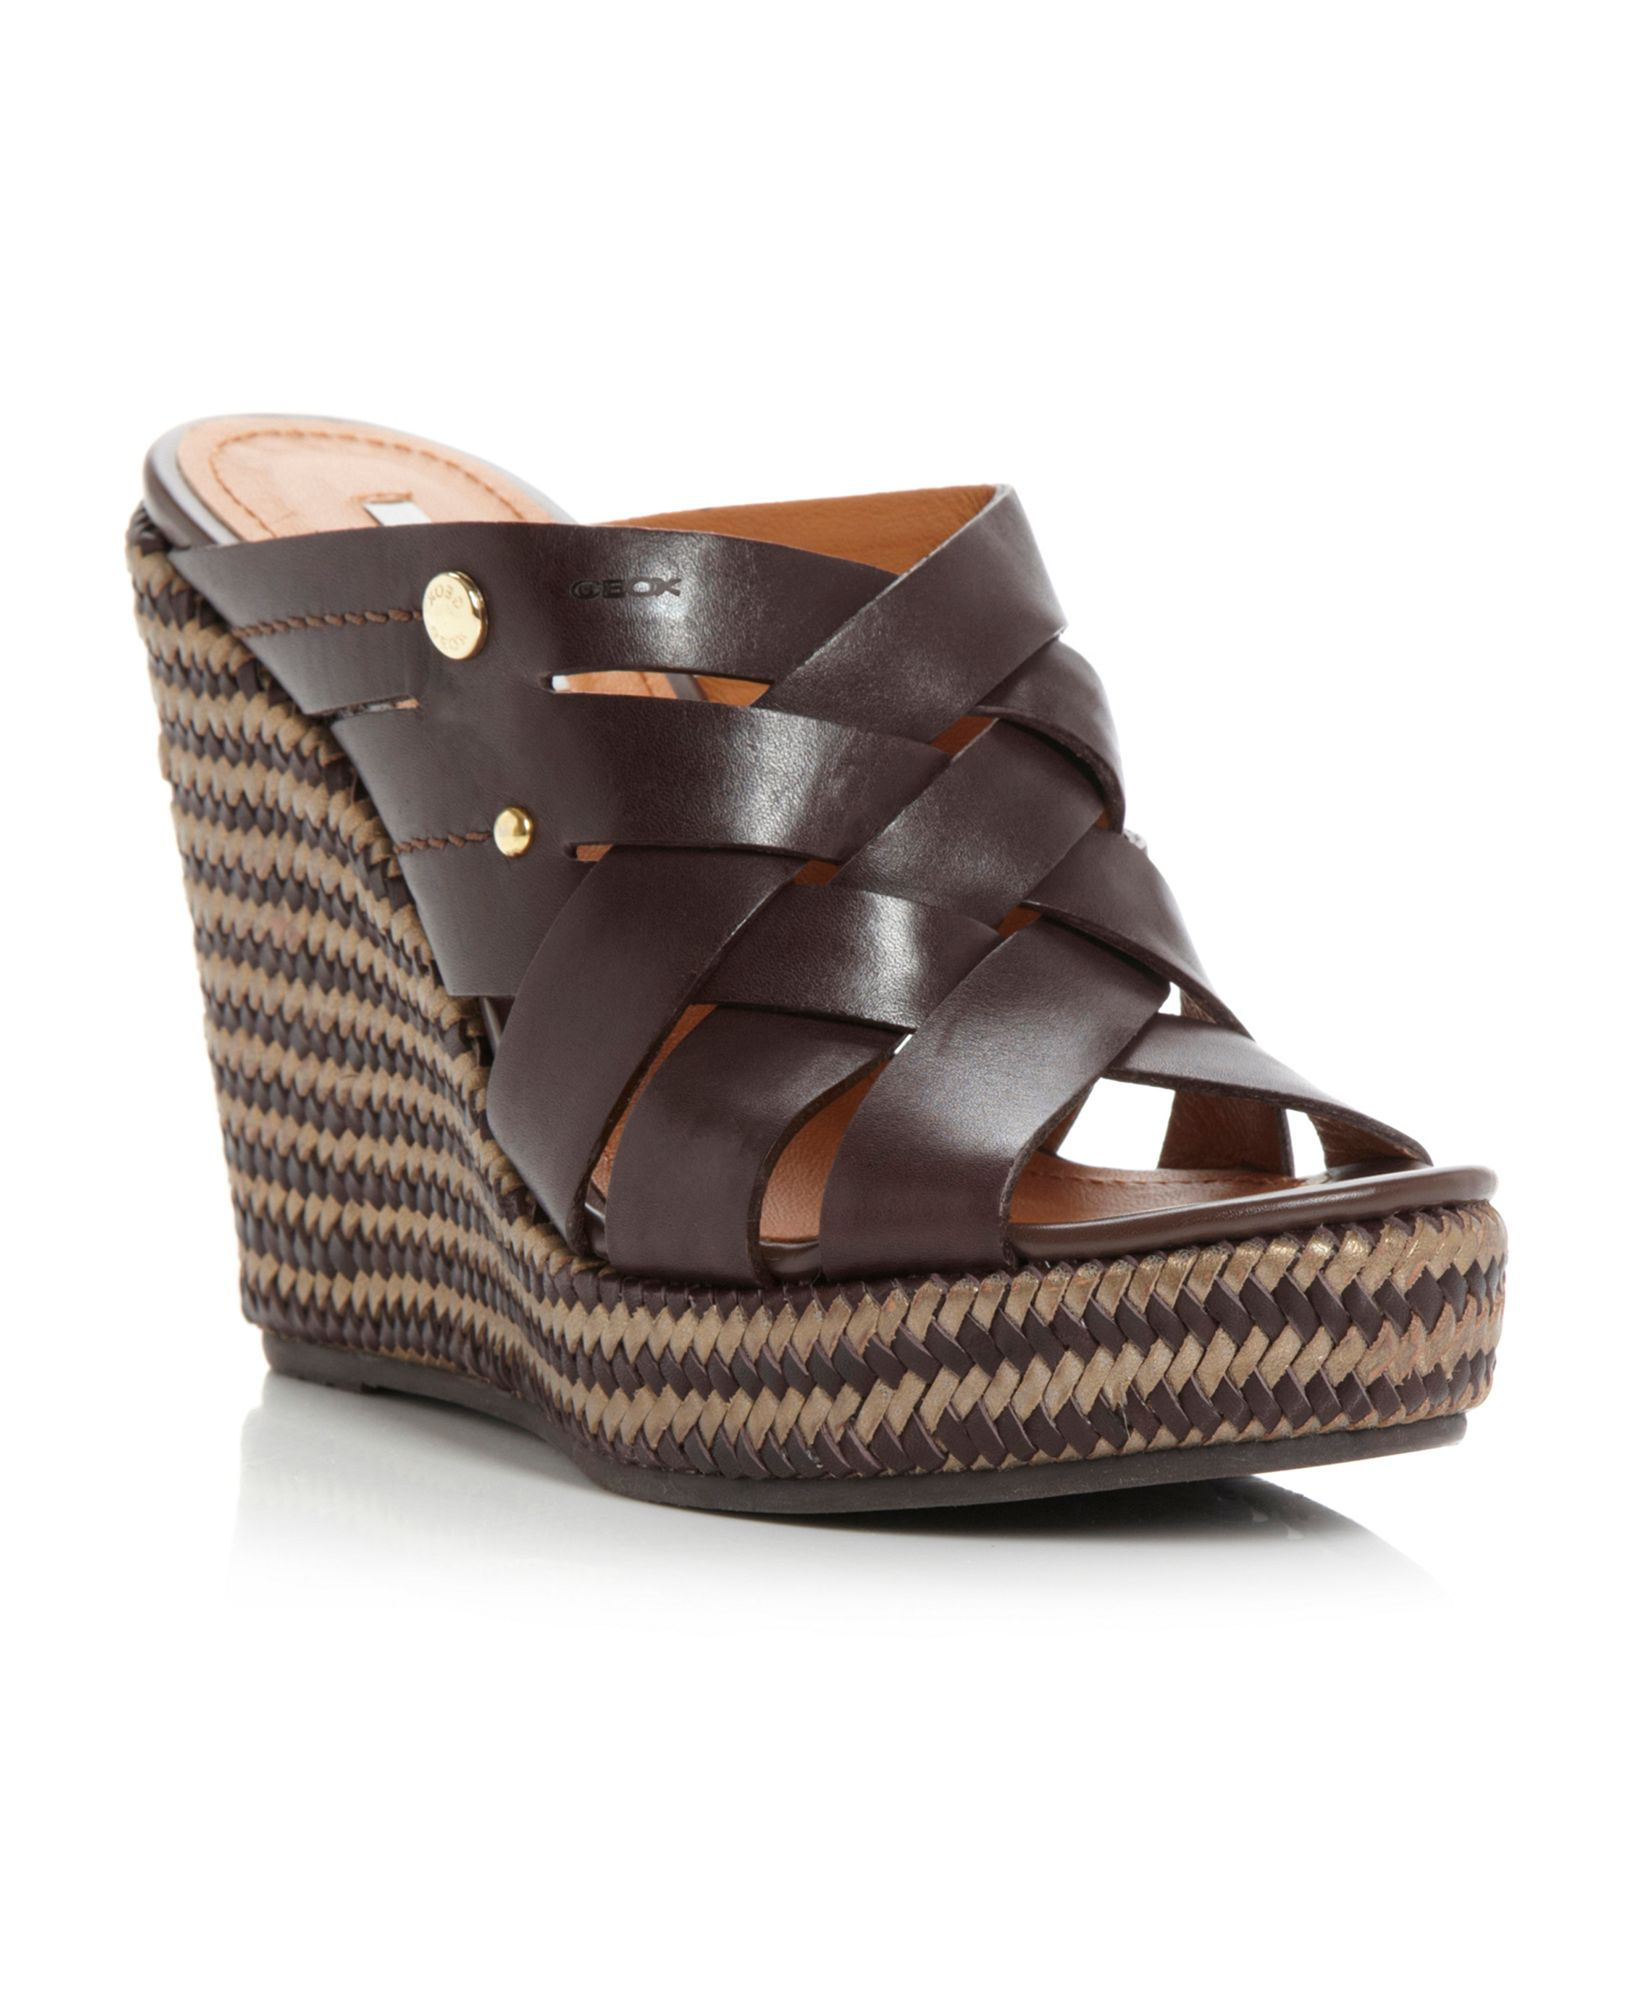 geox peonia raffia wedge sandals in brown lyst